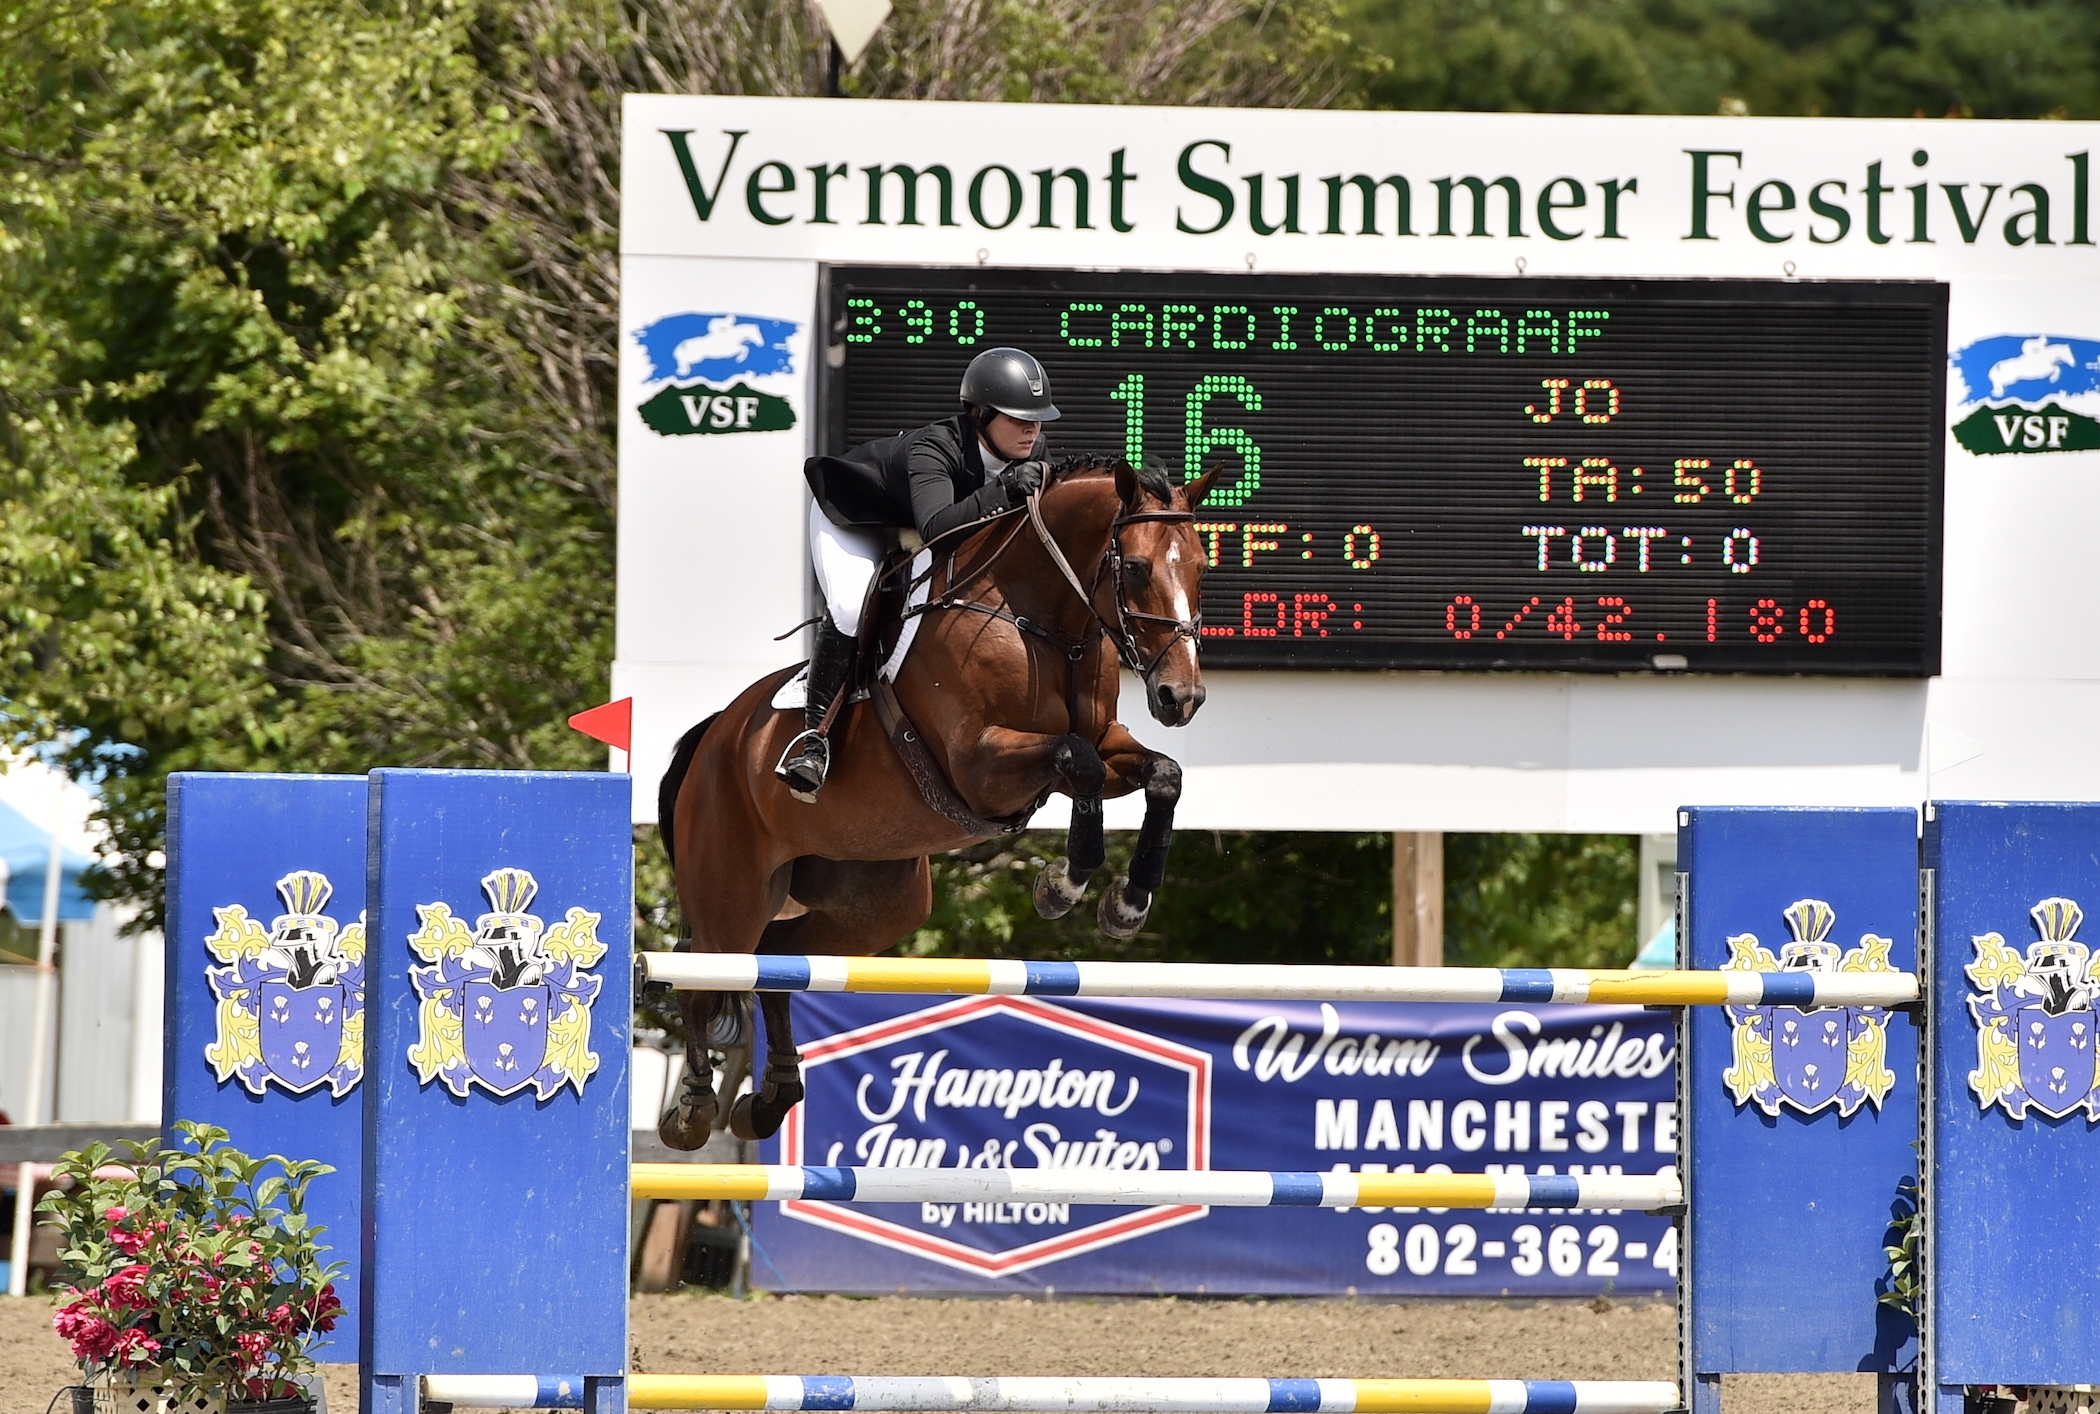 Alexandra Carlton and Cardiograaf scored their first grand prix win together in the $30,000 Mount Equinox Grand Prix, presented by Hampton Inn & Suites Manchester, on Saturday, July 28, at the 25th annual Vermont Summer Festival in East Dorset, VT.<br><b>Photo by <a href='http://www.andrewryback.com/' target='_blank'>Andrew Ryback Photography</a></b>